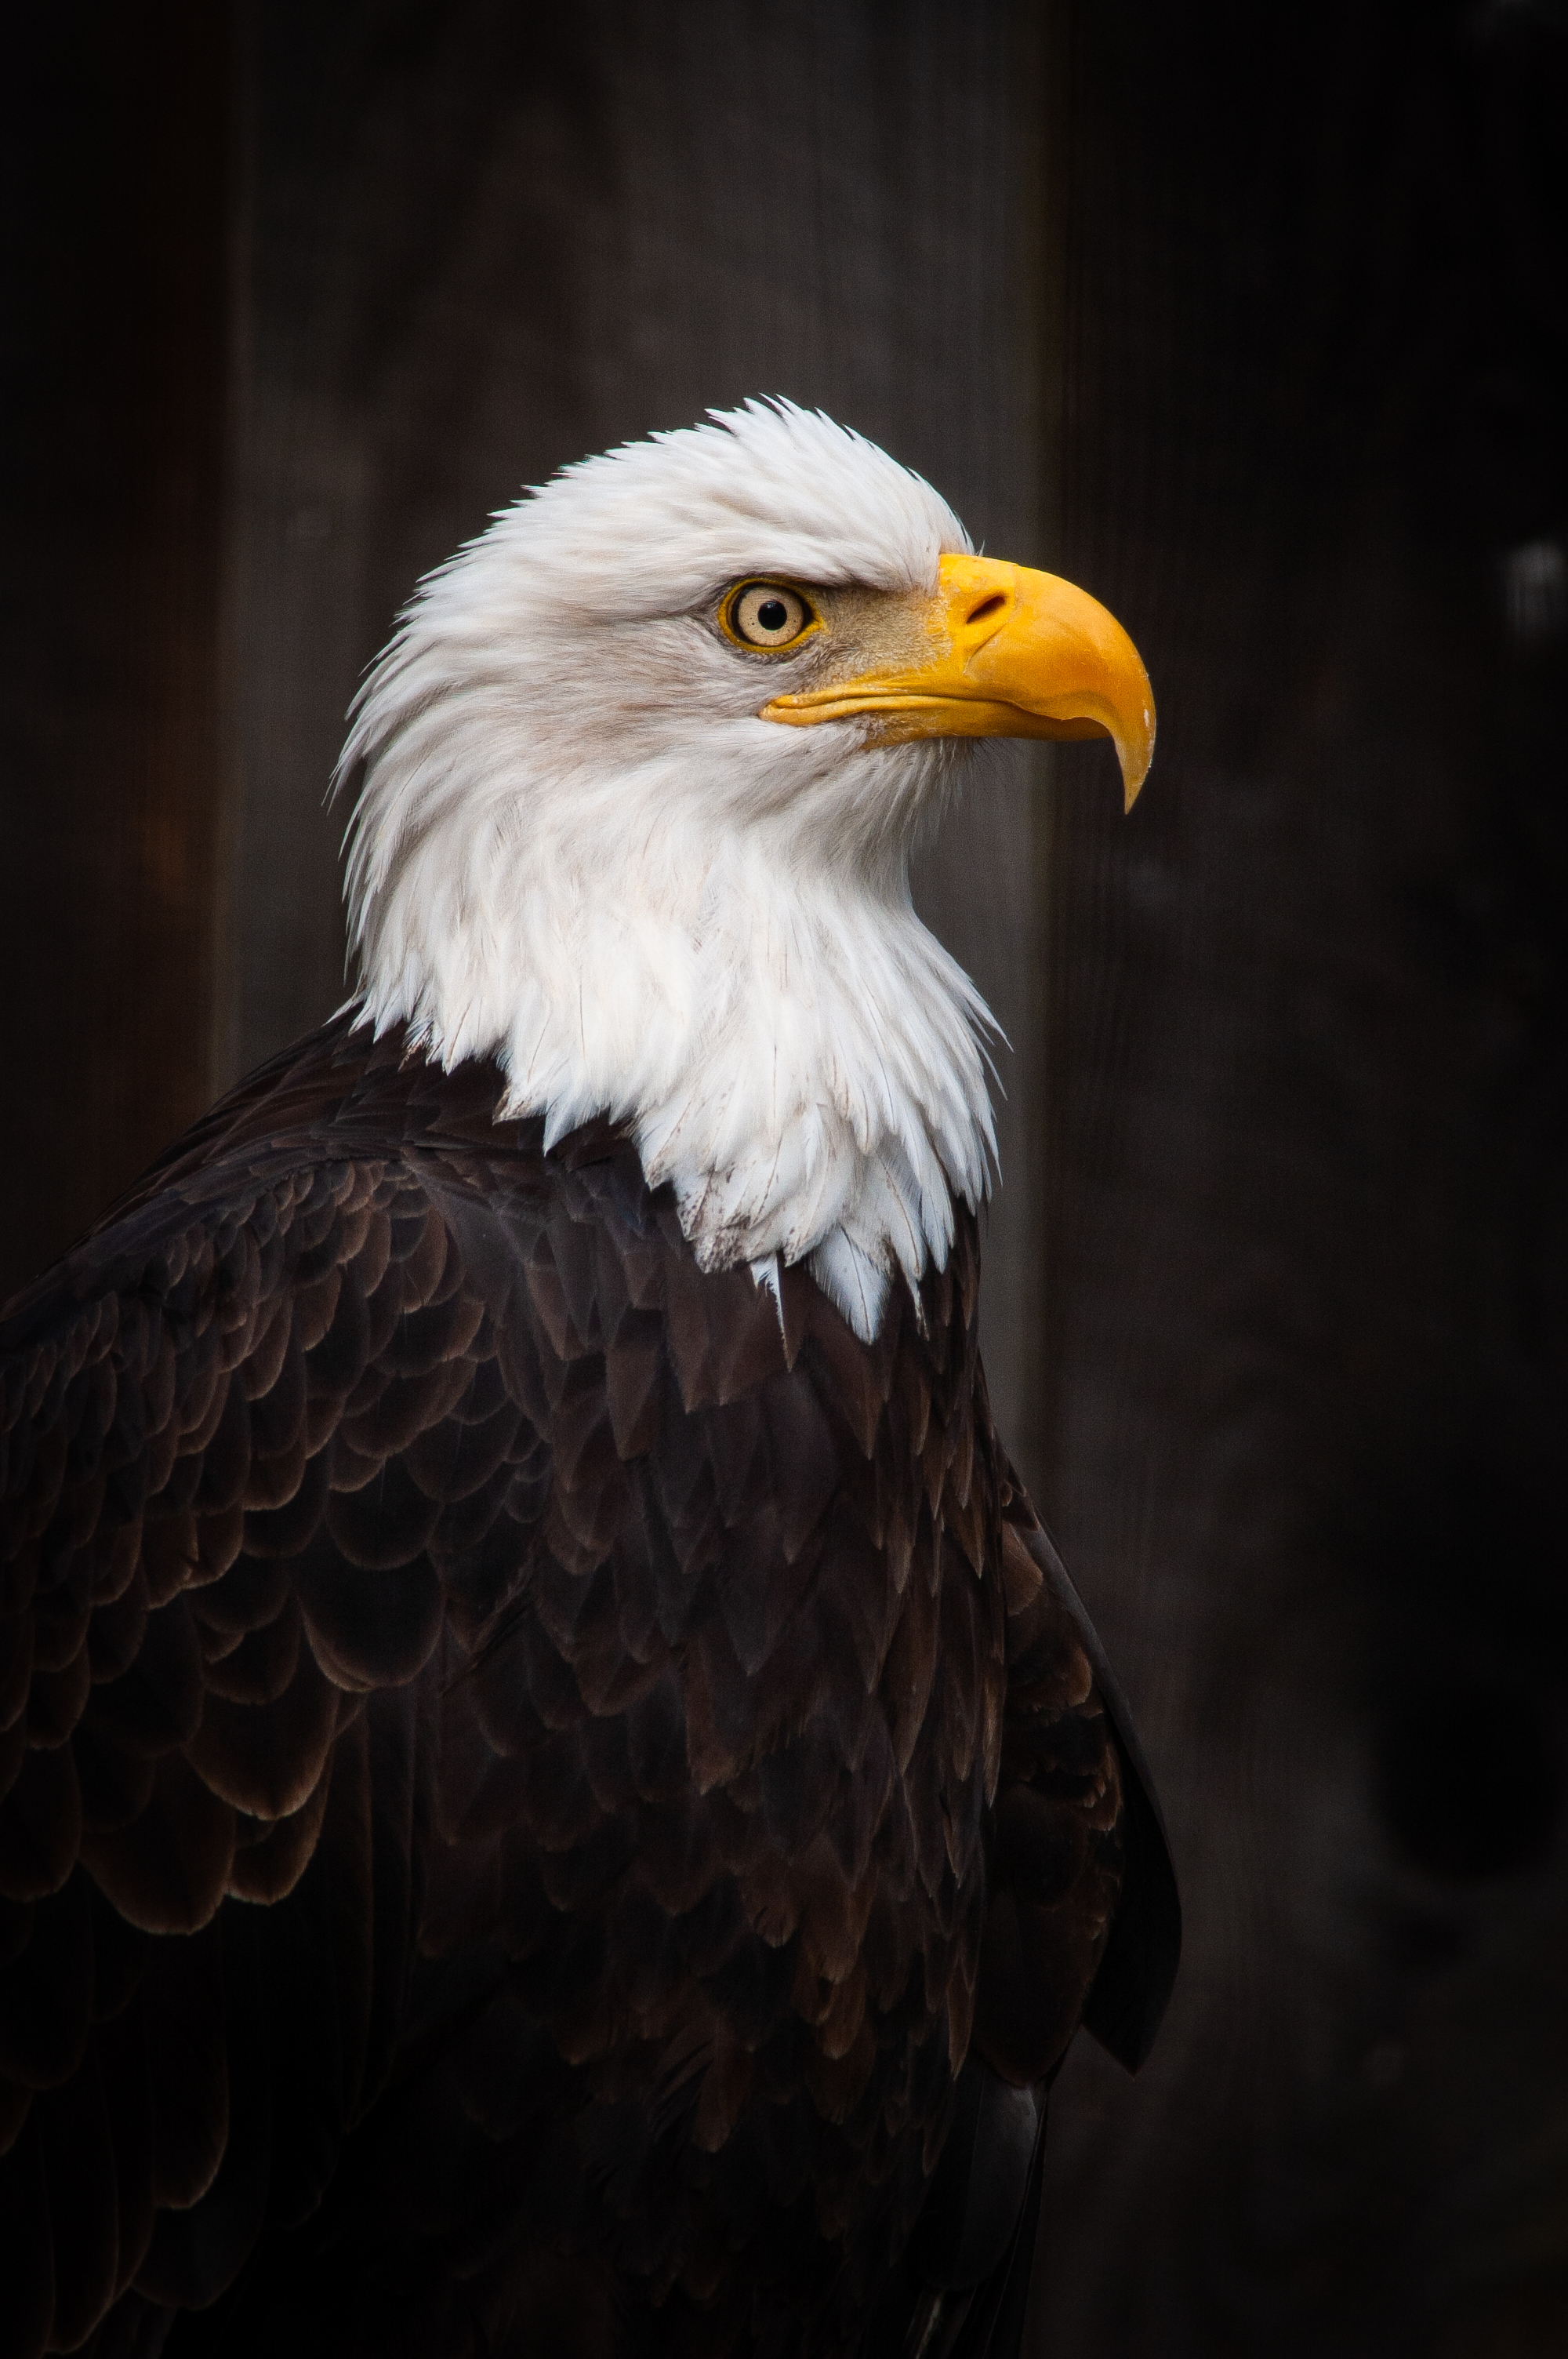 140579 download wallpaper Animals, Eagle, Bird, Predator, Beak, Feather screensavers and pictures for free